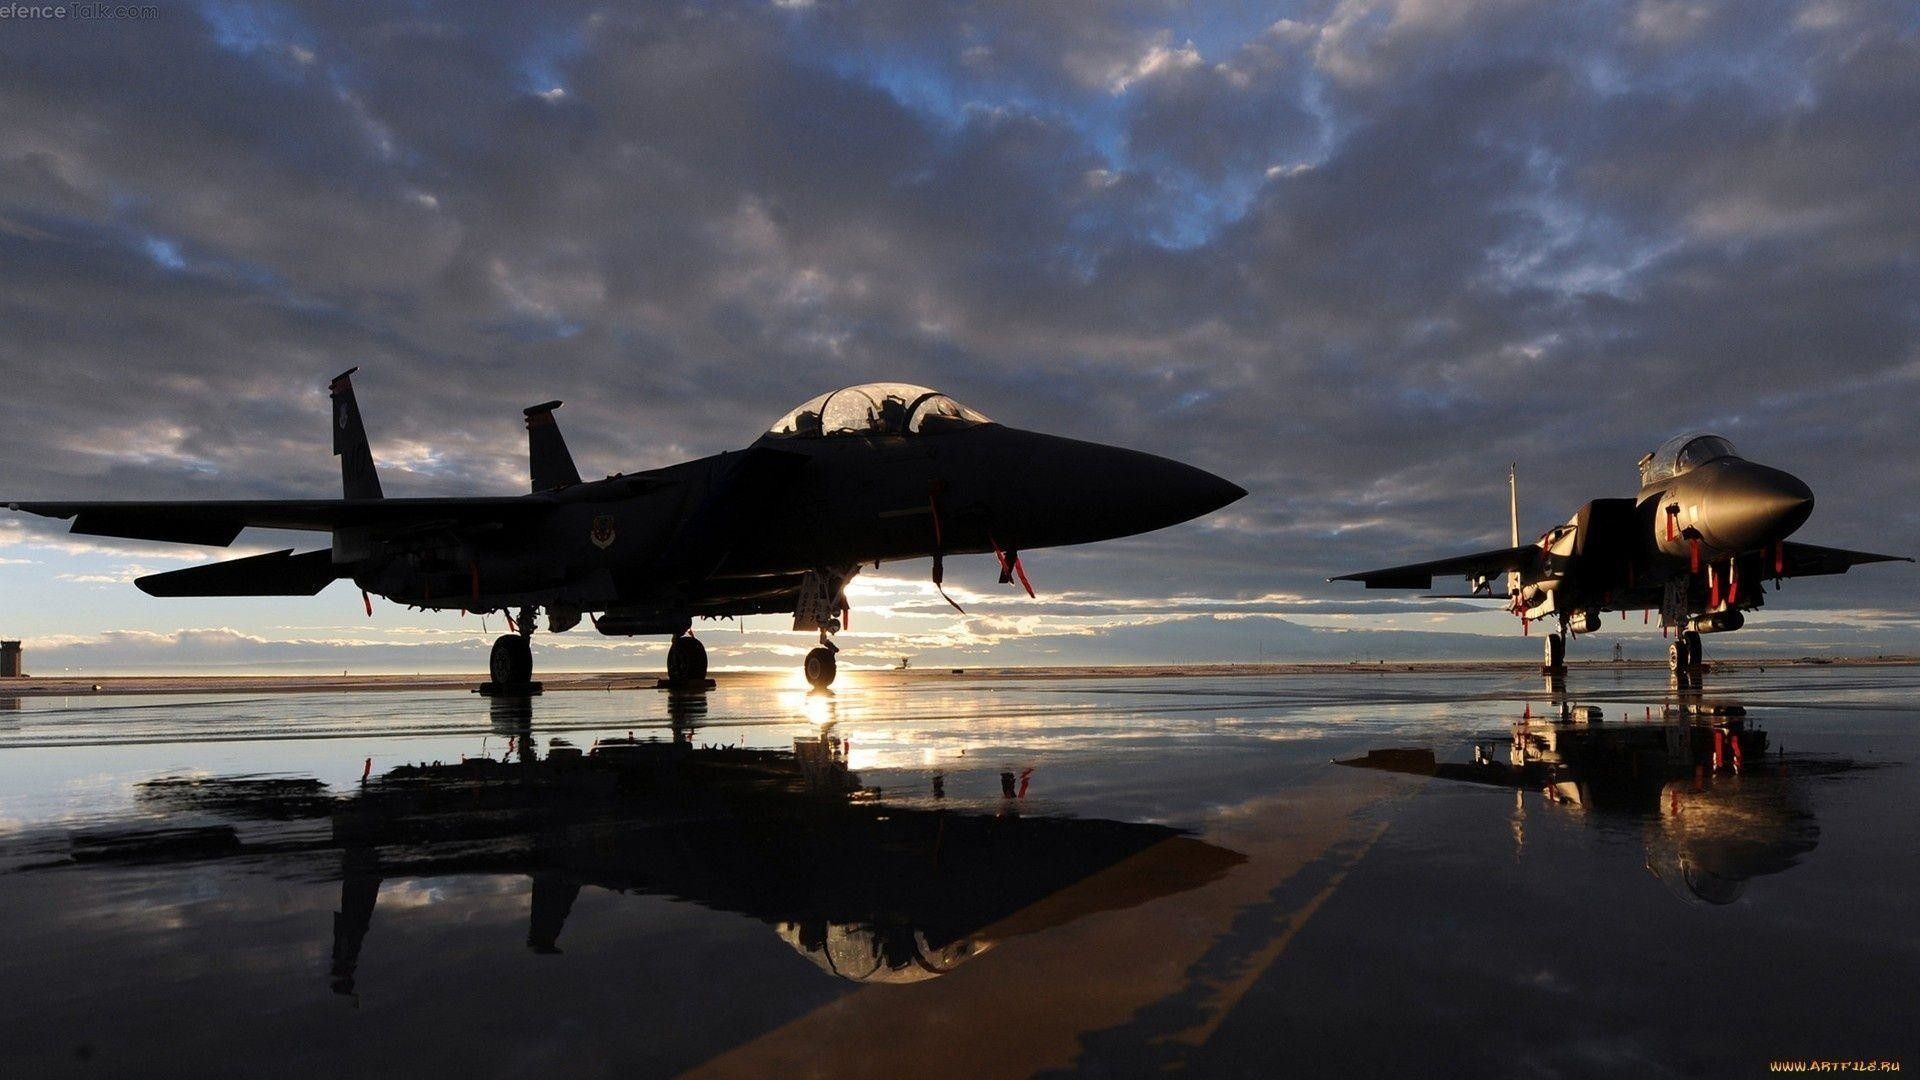 Air Force Wallpaper Hd Iphone · Air Force Wallpapers | Best .